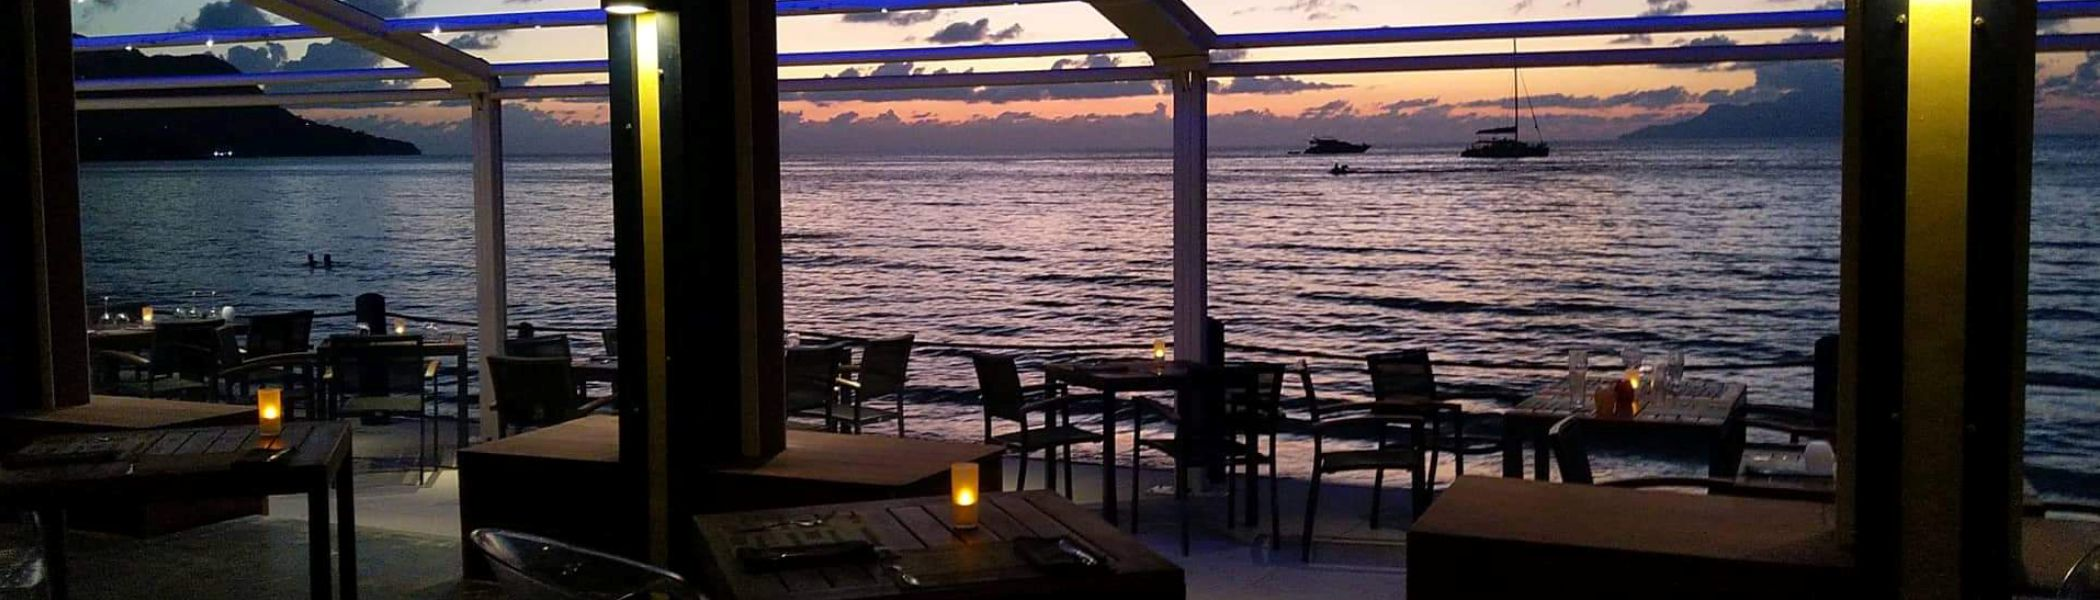 la-plage, Bars and restaurants in Seychelles Islands